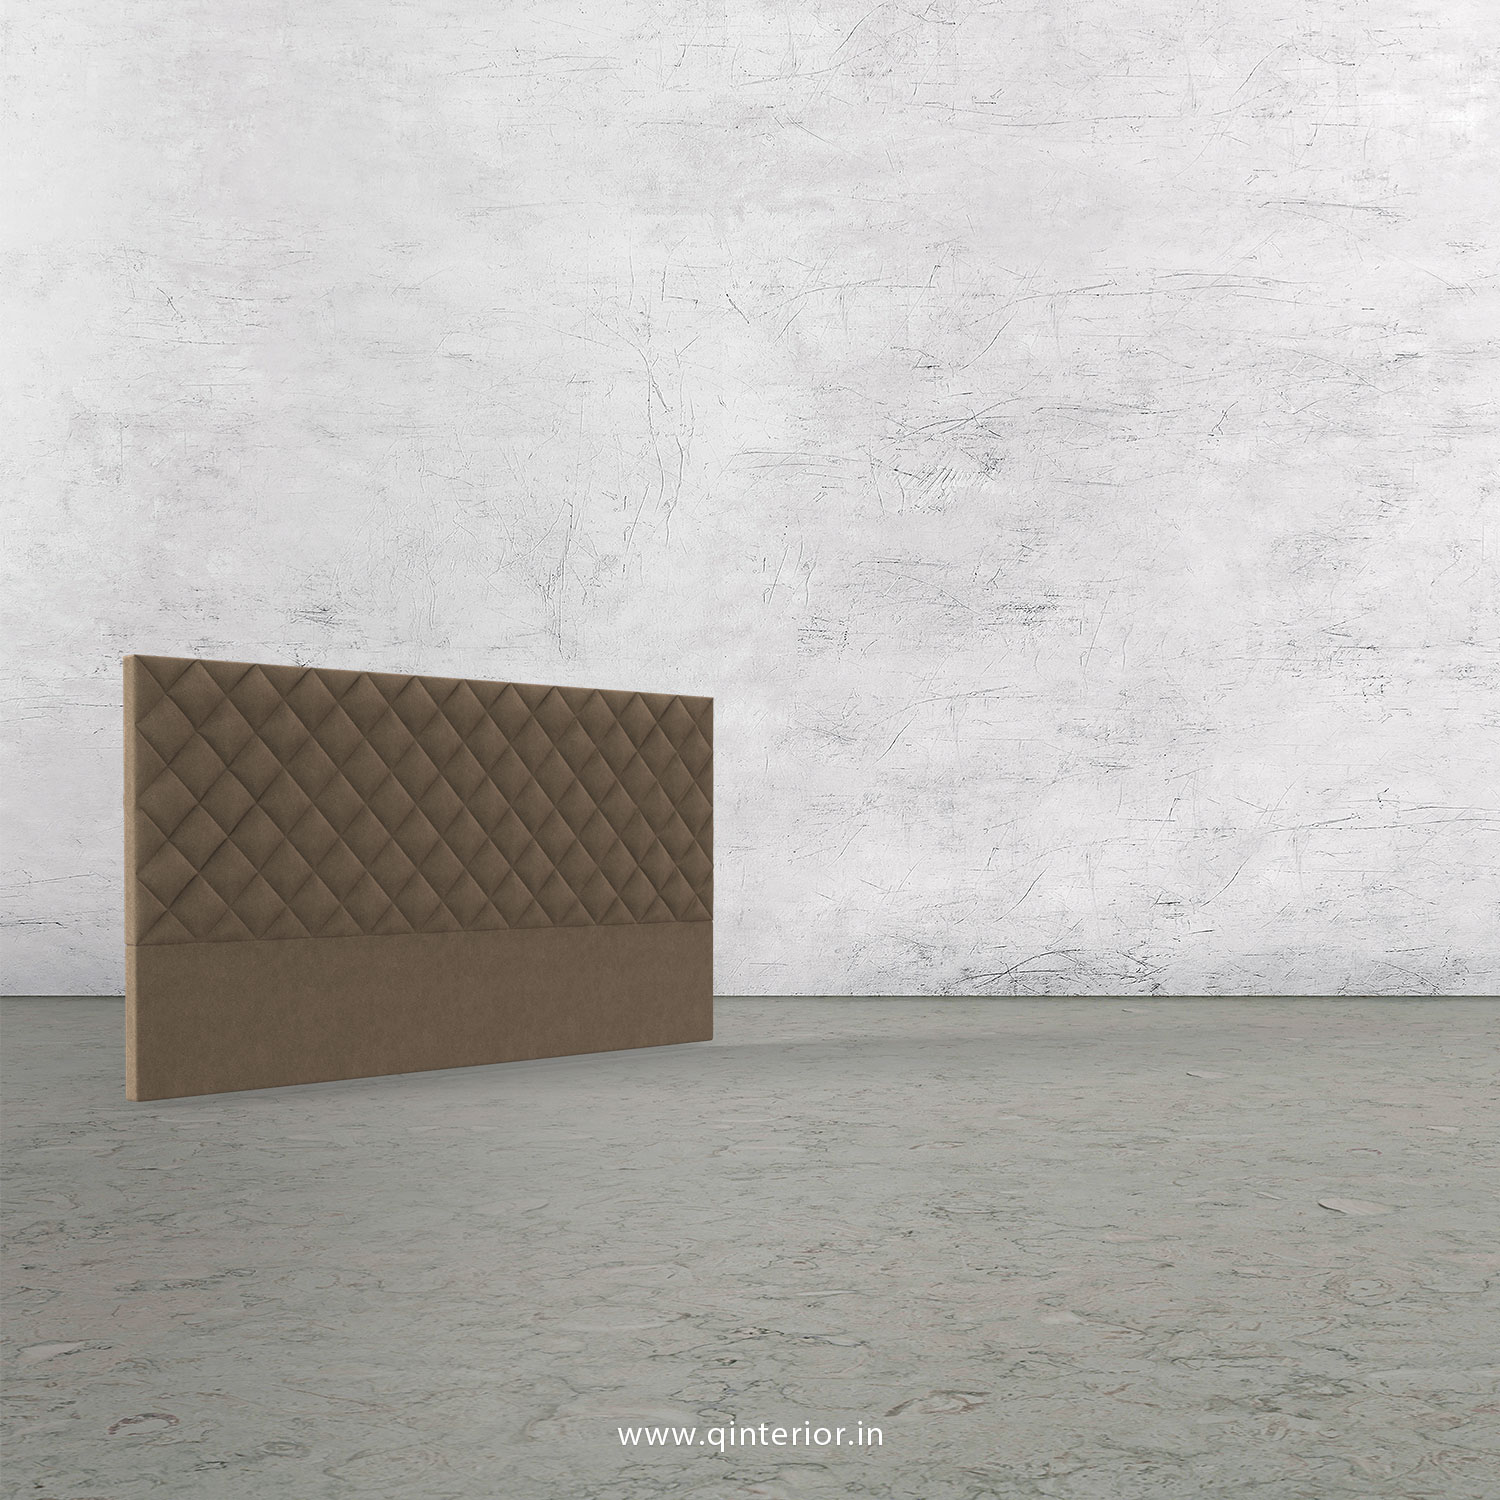 Aquila Bed Headboard In Velvet Fabric Bhb006 Vl03 In Brown Color By Q Interior